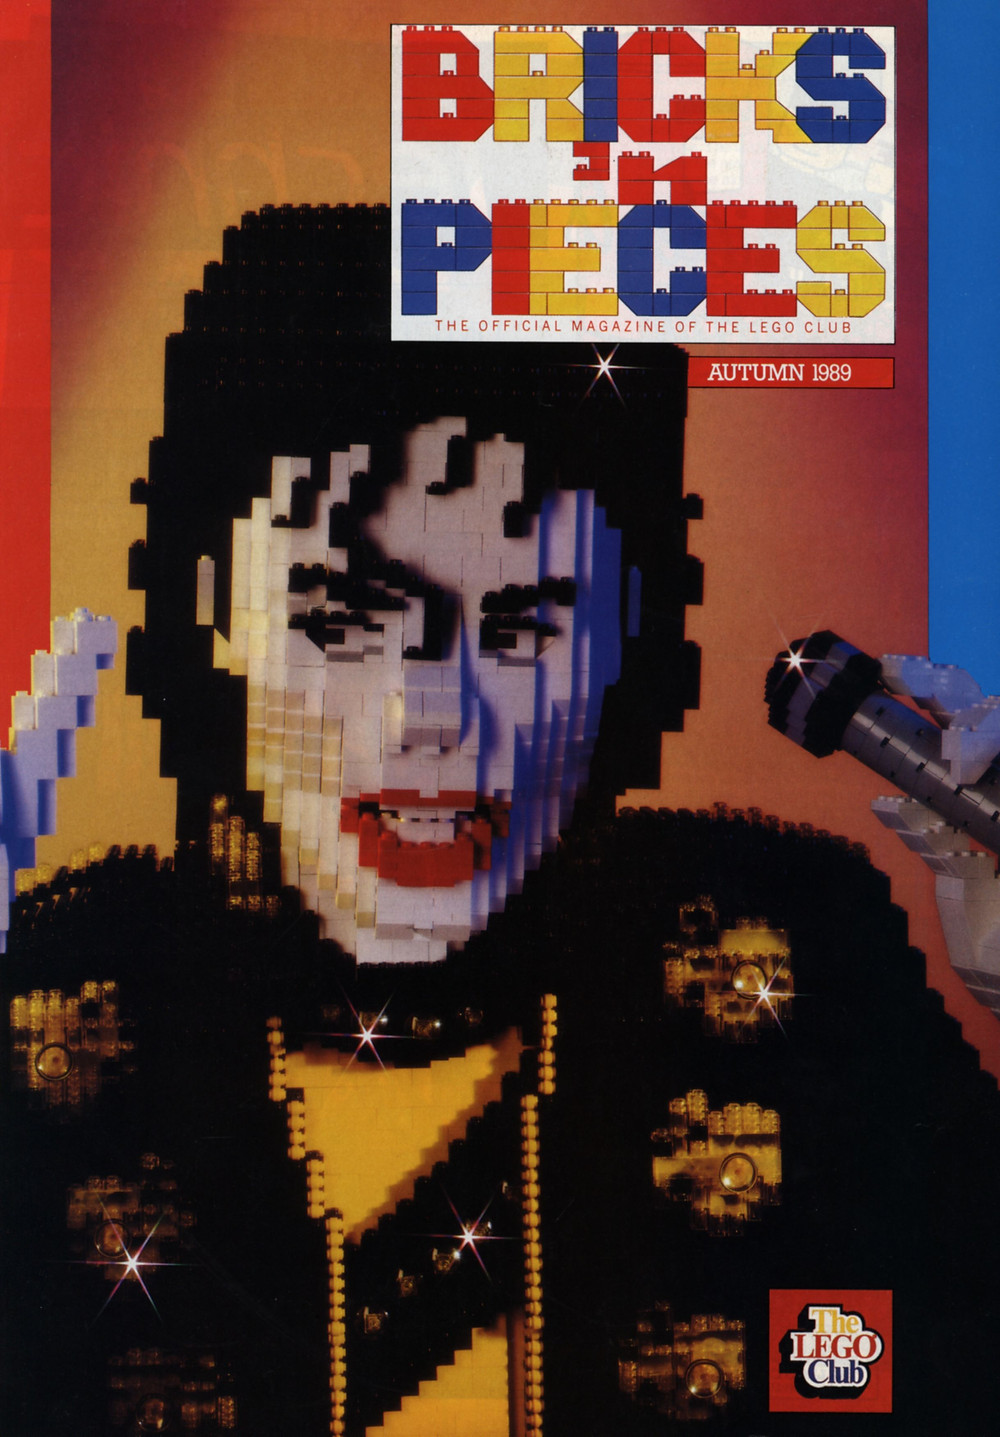 LEGO Michael Jackson, as he originally appeared on the cover of the Autumn issue of Bricks 'n Pieces